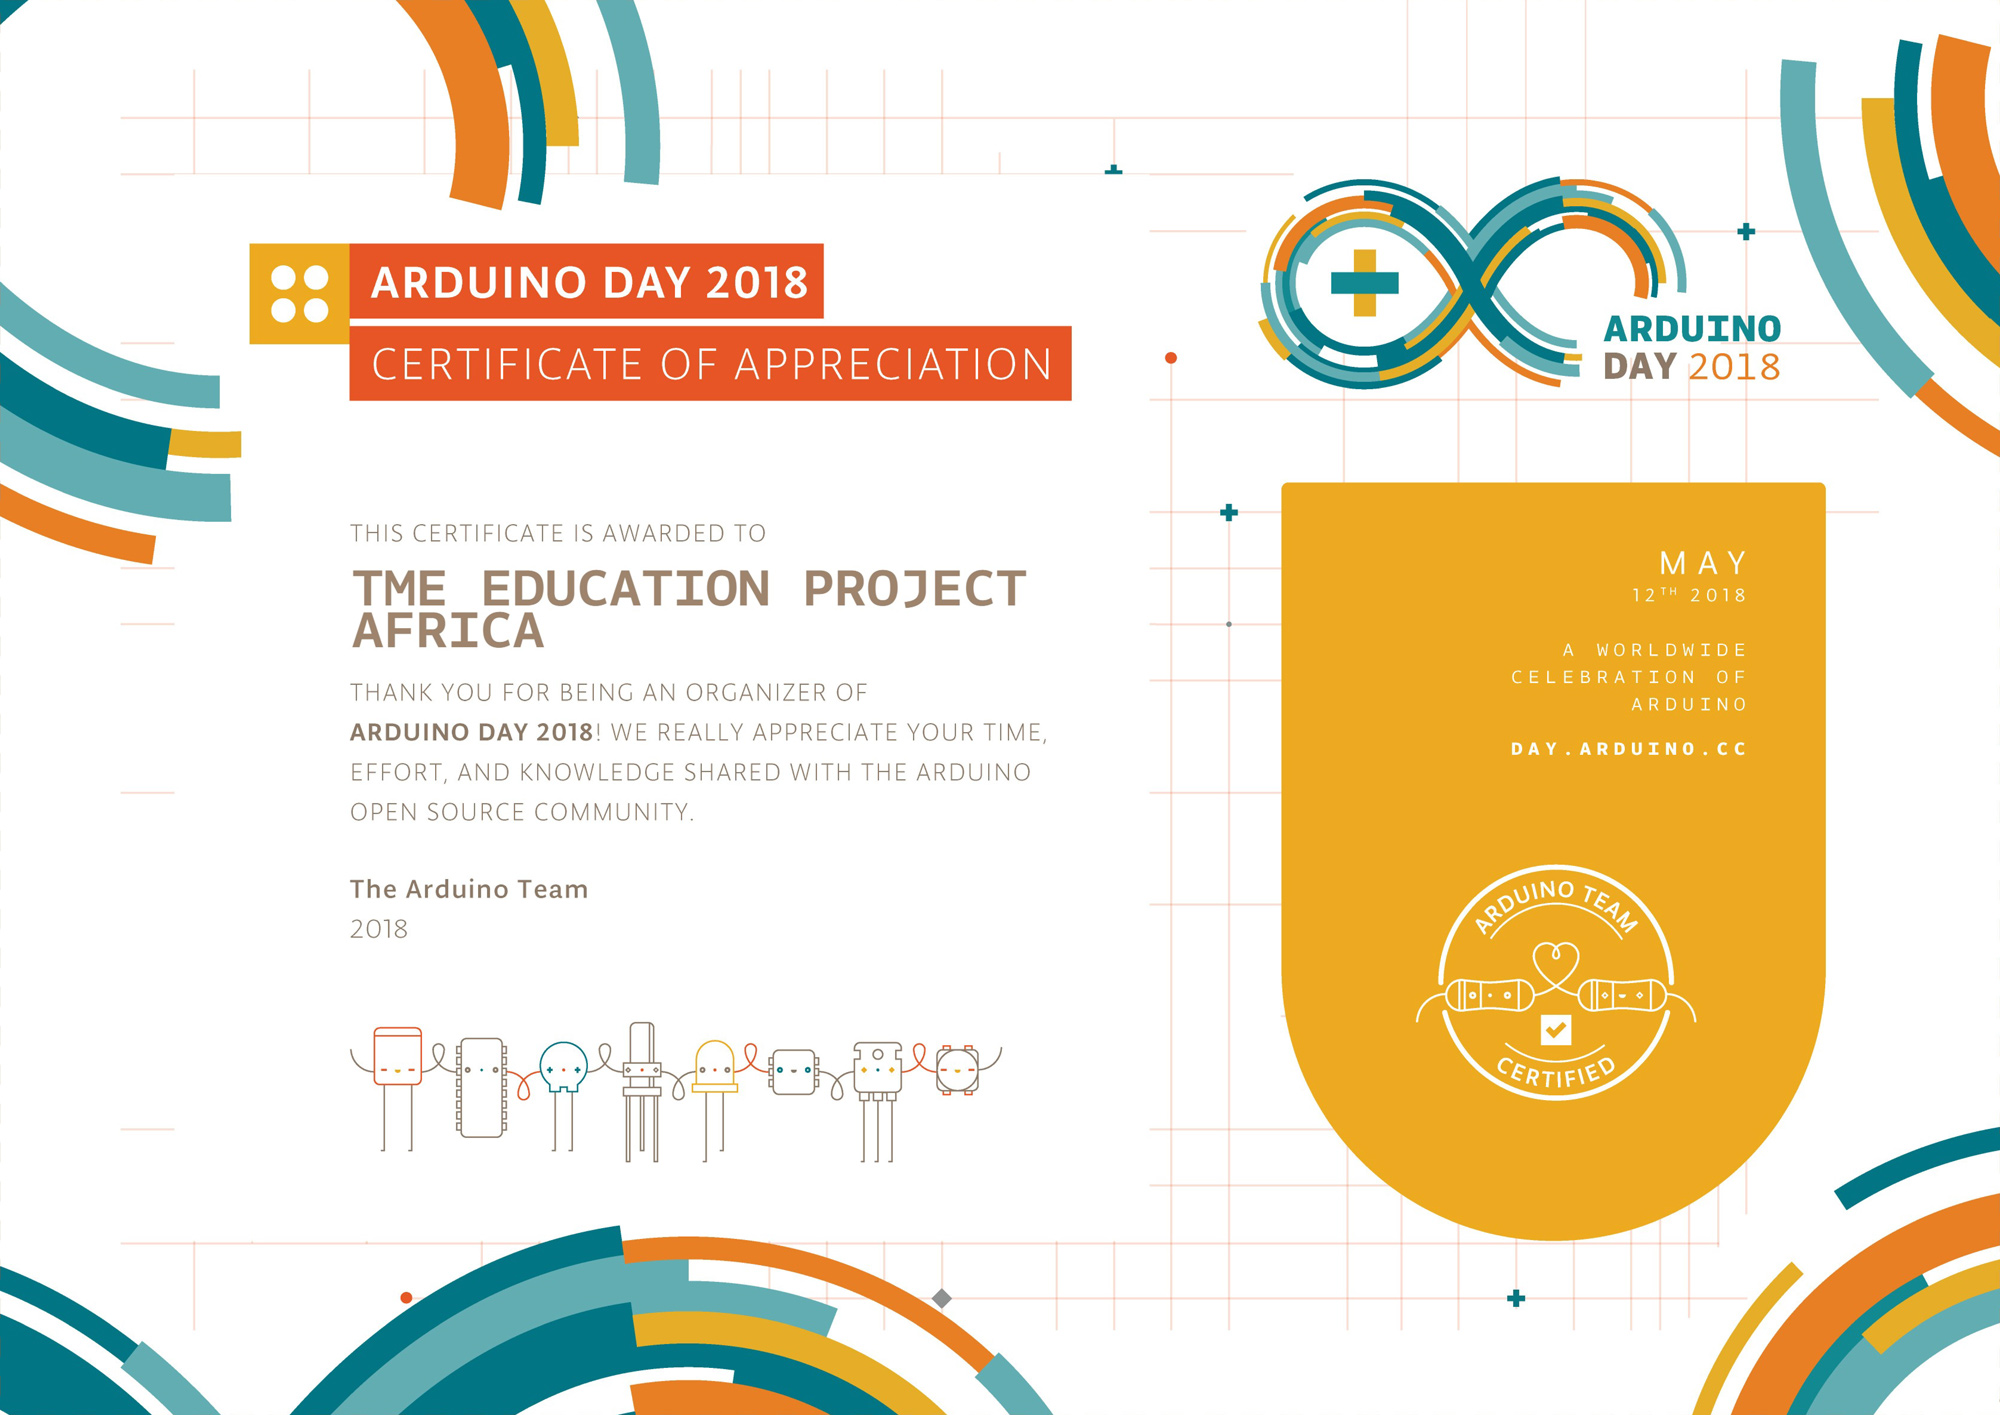 Arduino Day 2018 celebrations in Uganda!